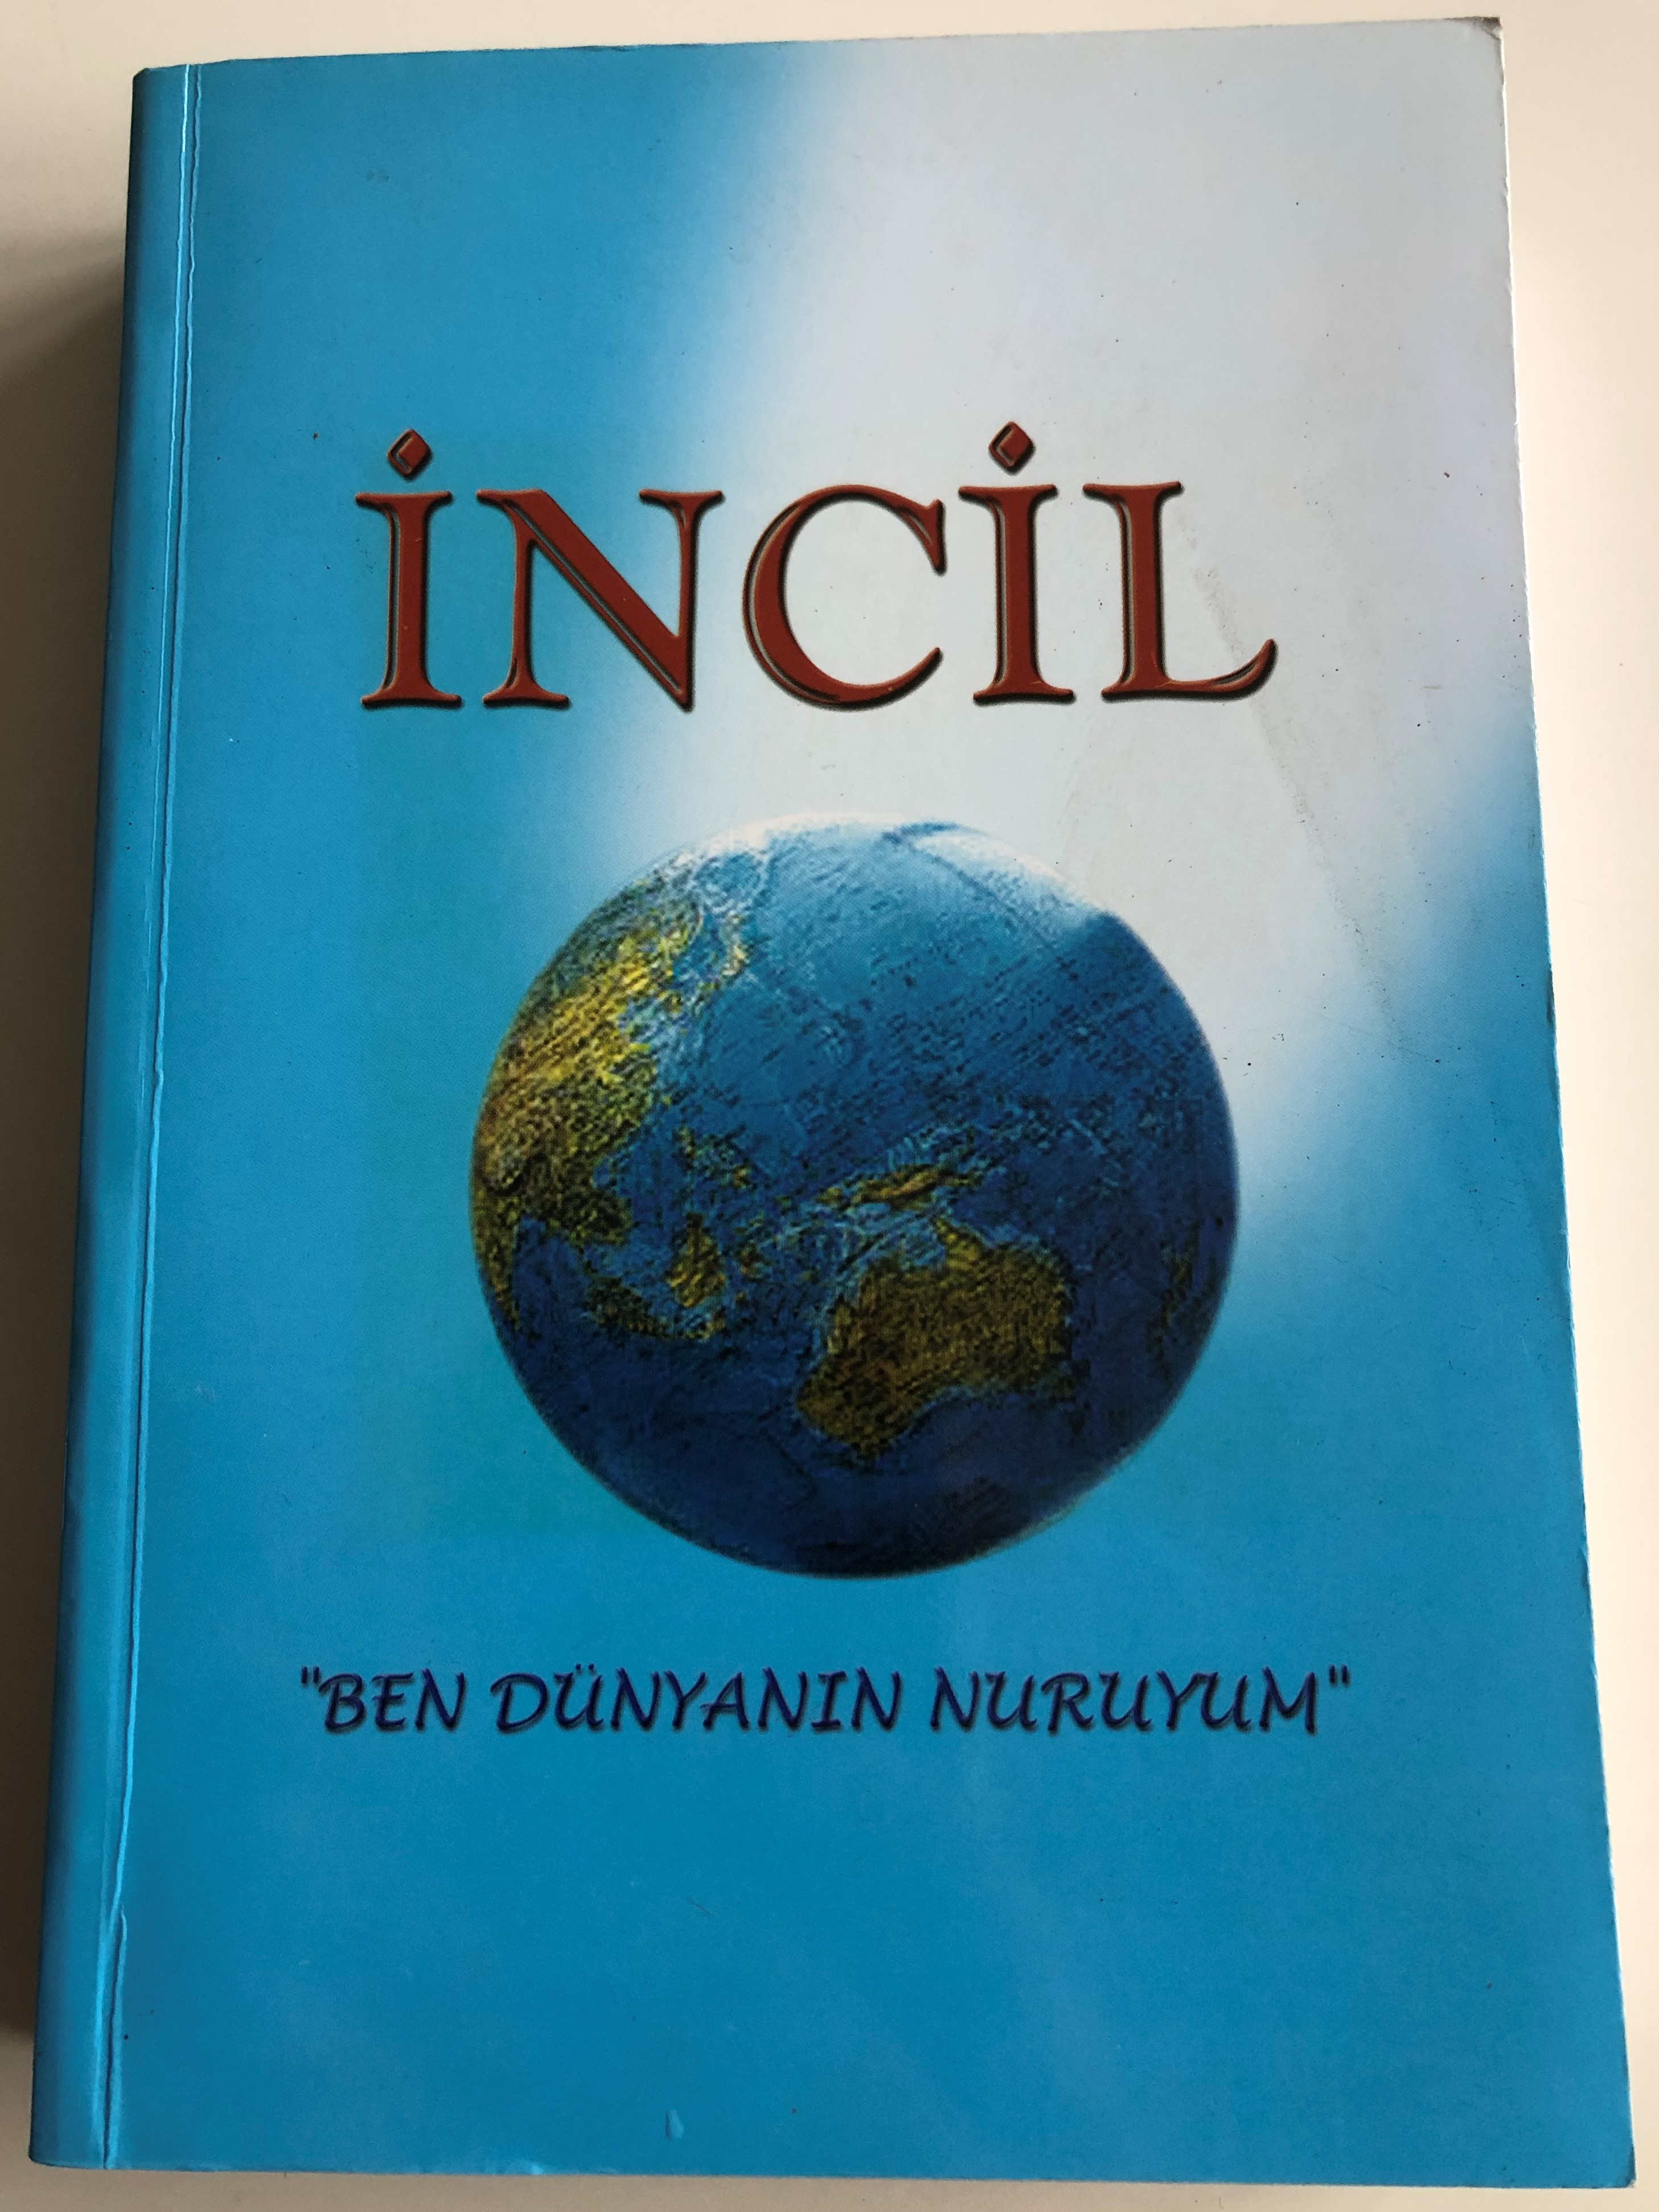 kutsal-incil-turkish-language-new-testament-ben-d-nyanin-nuruyum-1.jpg